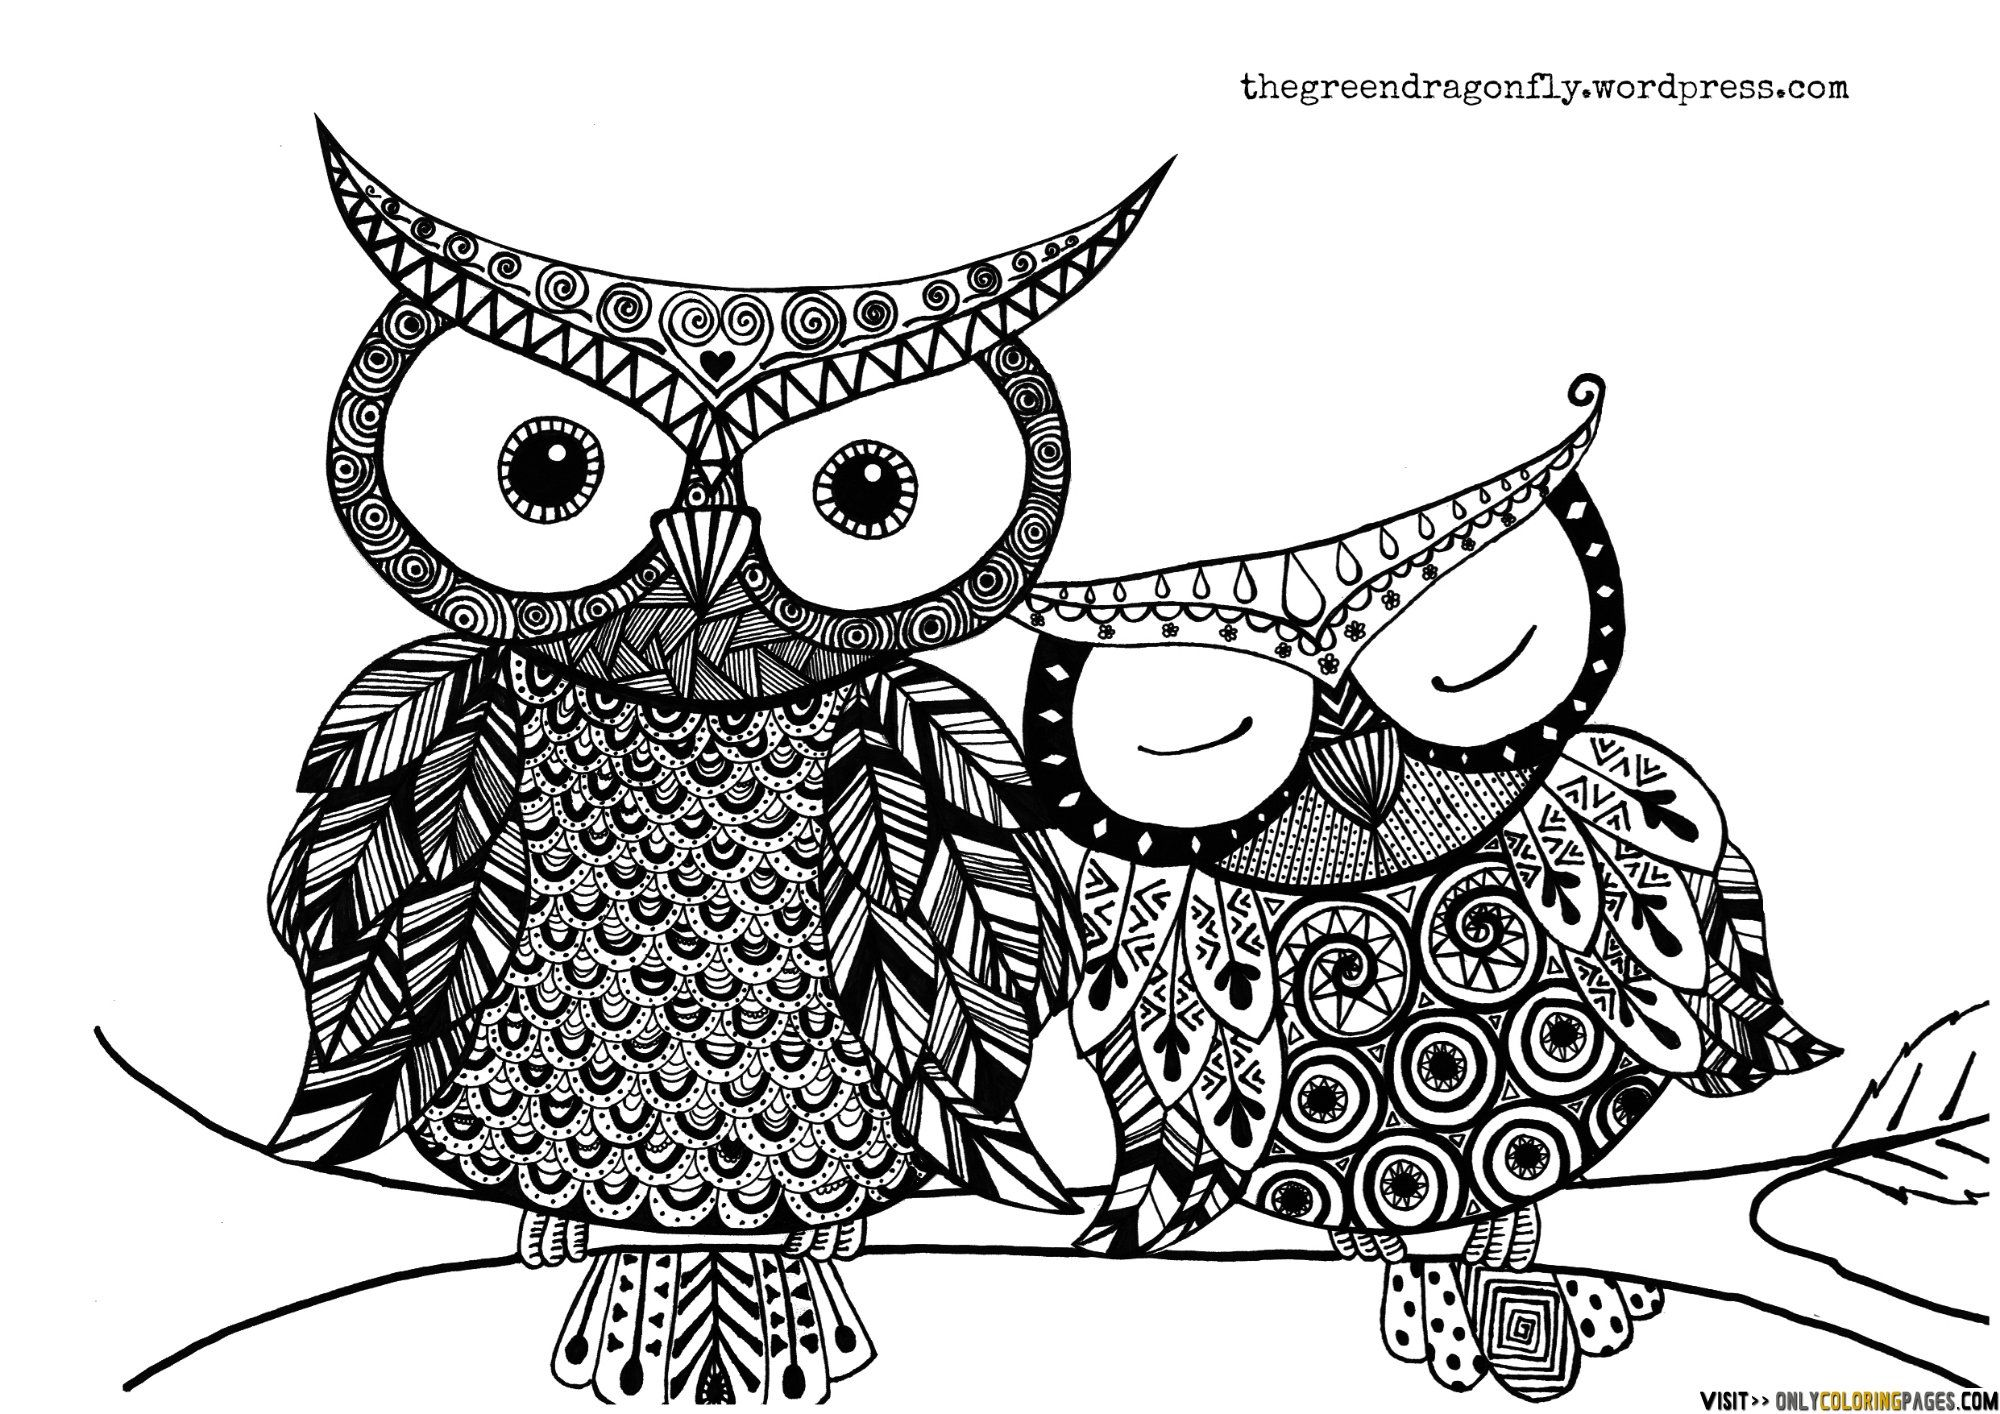 Owl Coloring Pages Printable Free Online Sheets For Kids Get The Latest Images Favorite